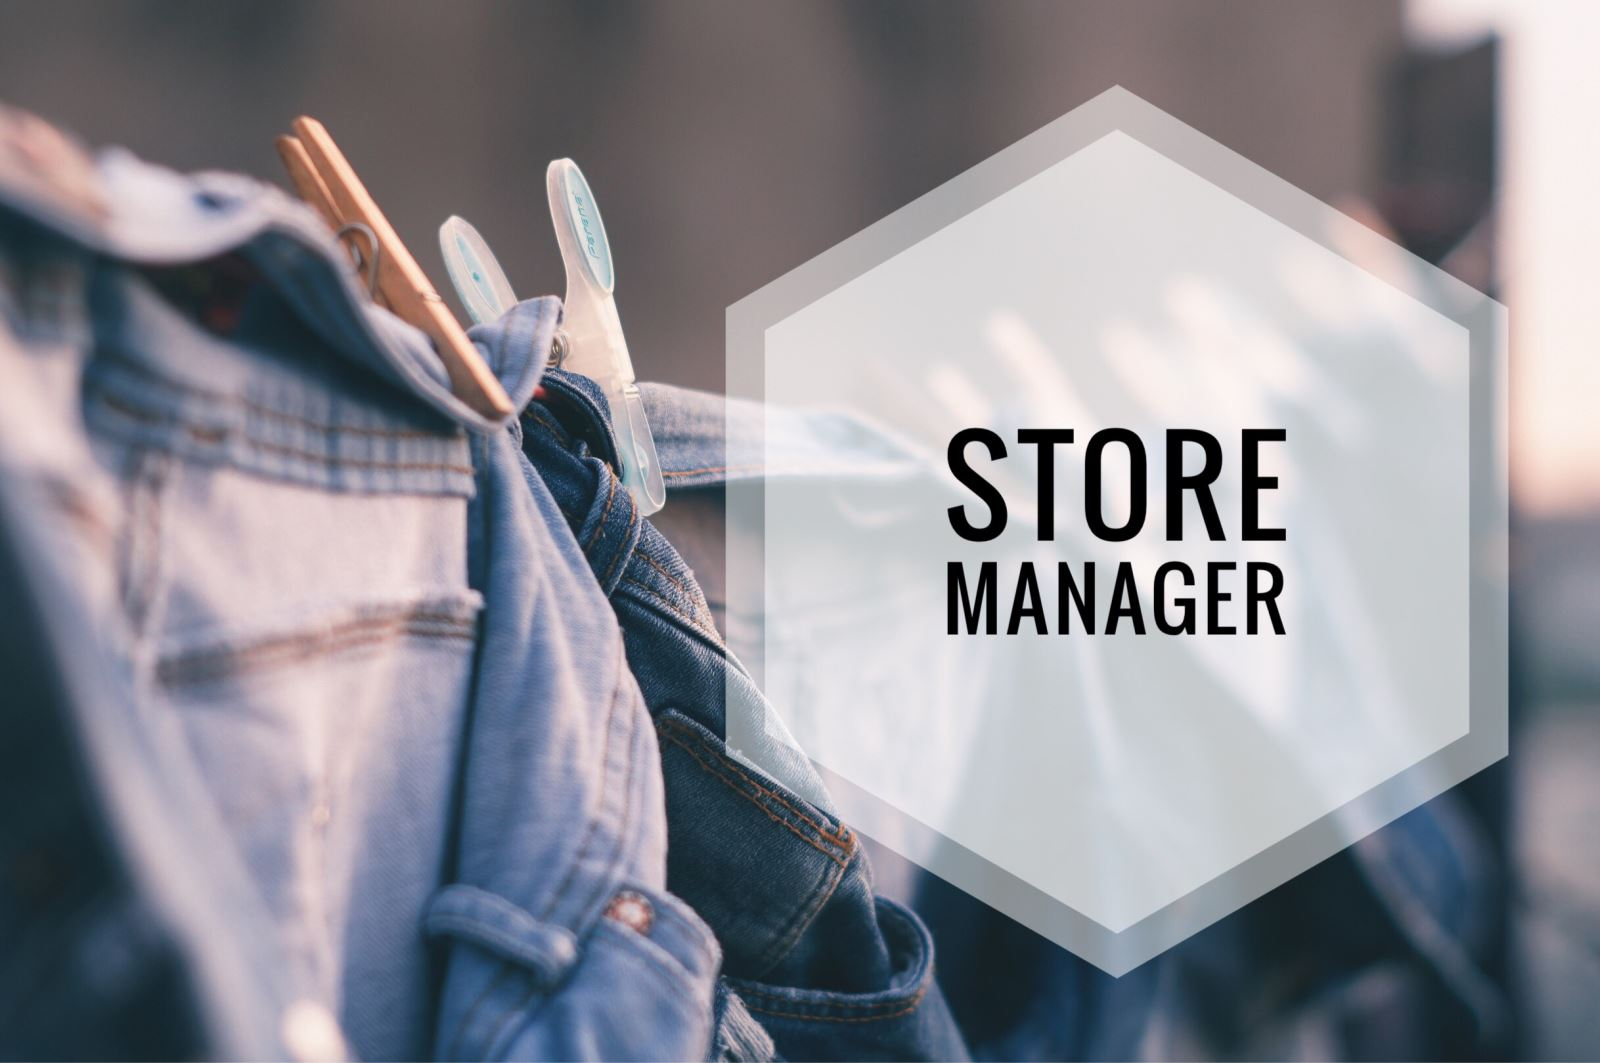 STORE MANAGER - FASHION ZNAČKA 248799